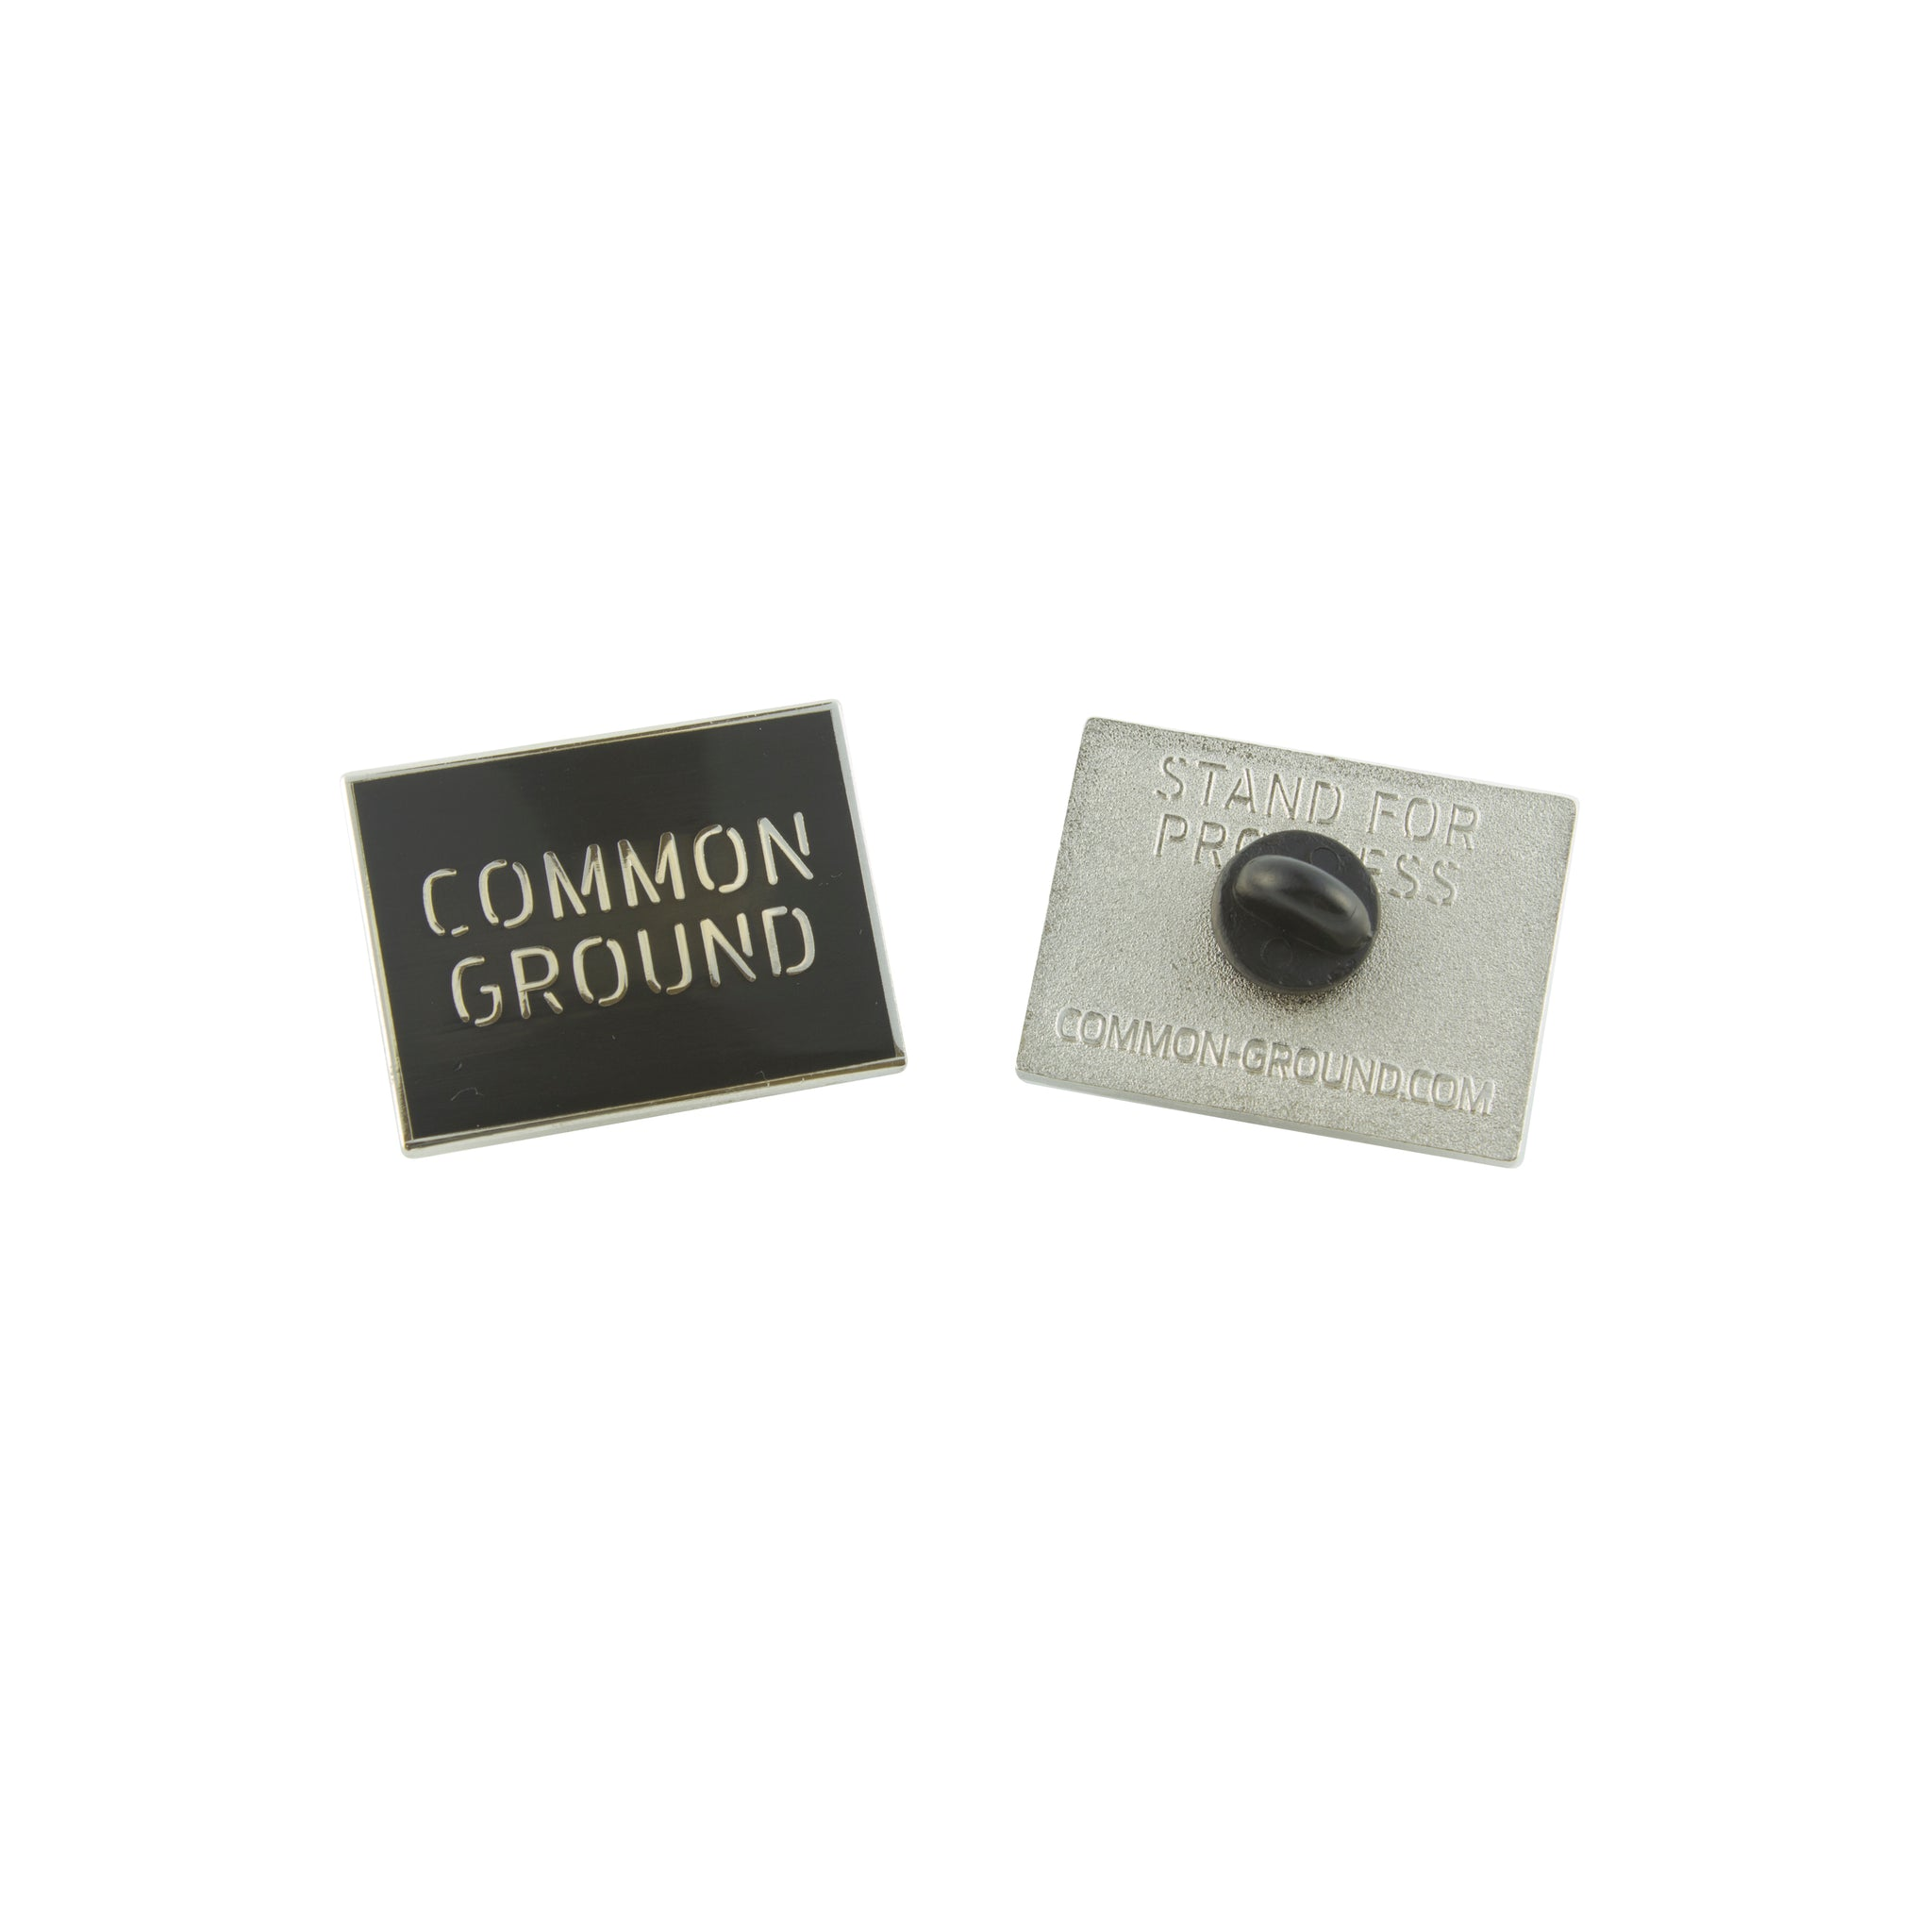 Jet_Black - Common Ground Pin Front and Back View